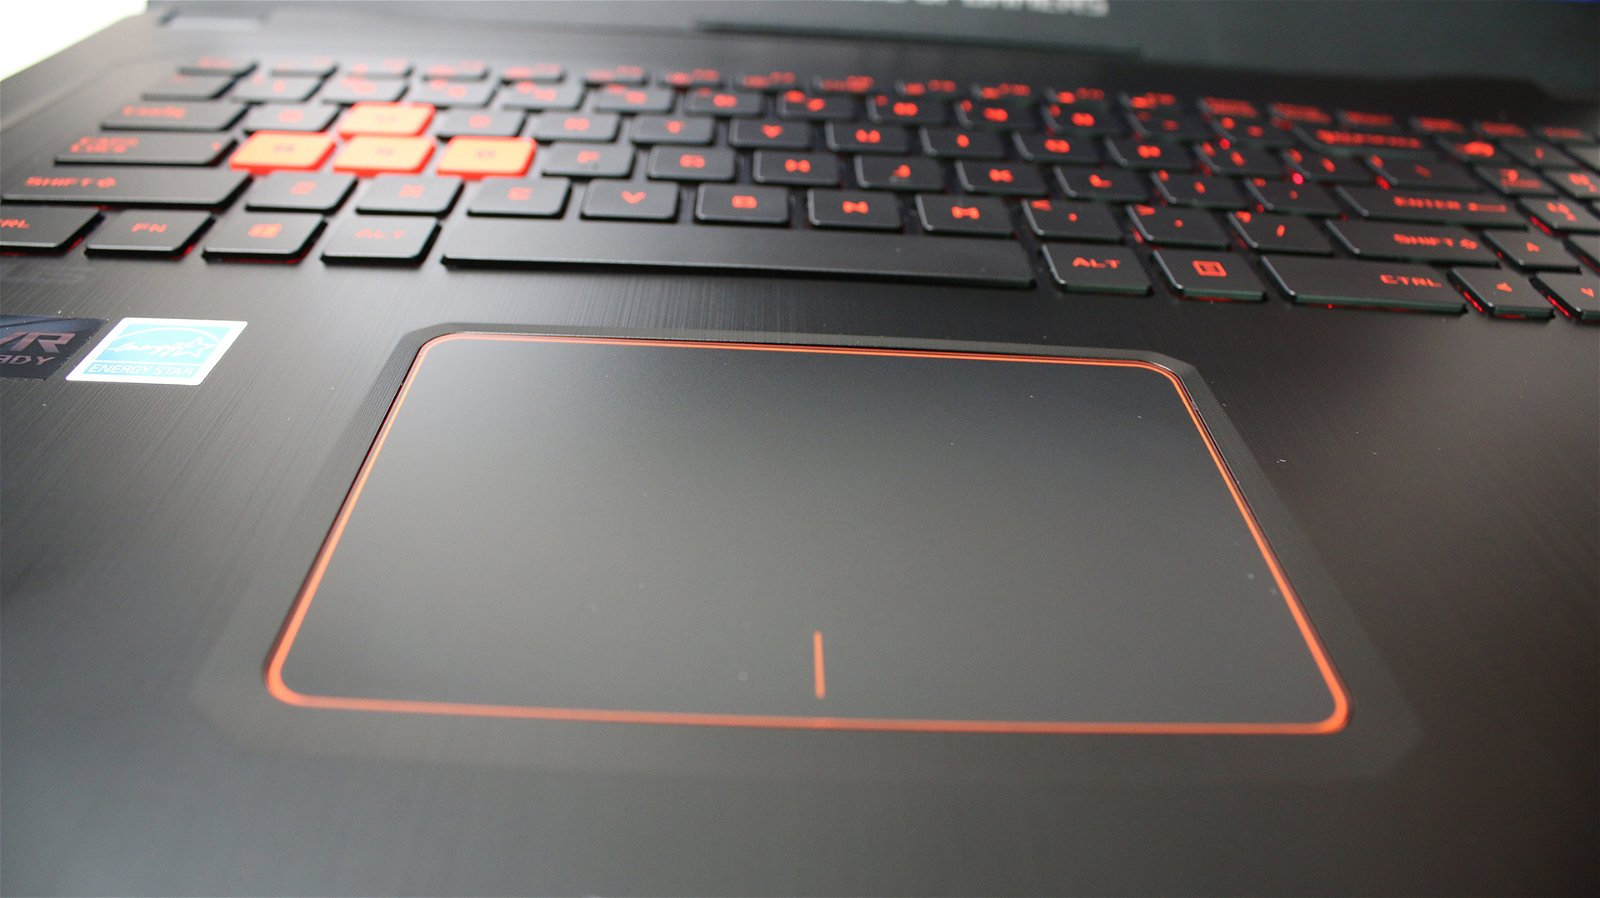 Asus Gl702M Gaming Notebook (Hardware) Review 11